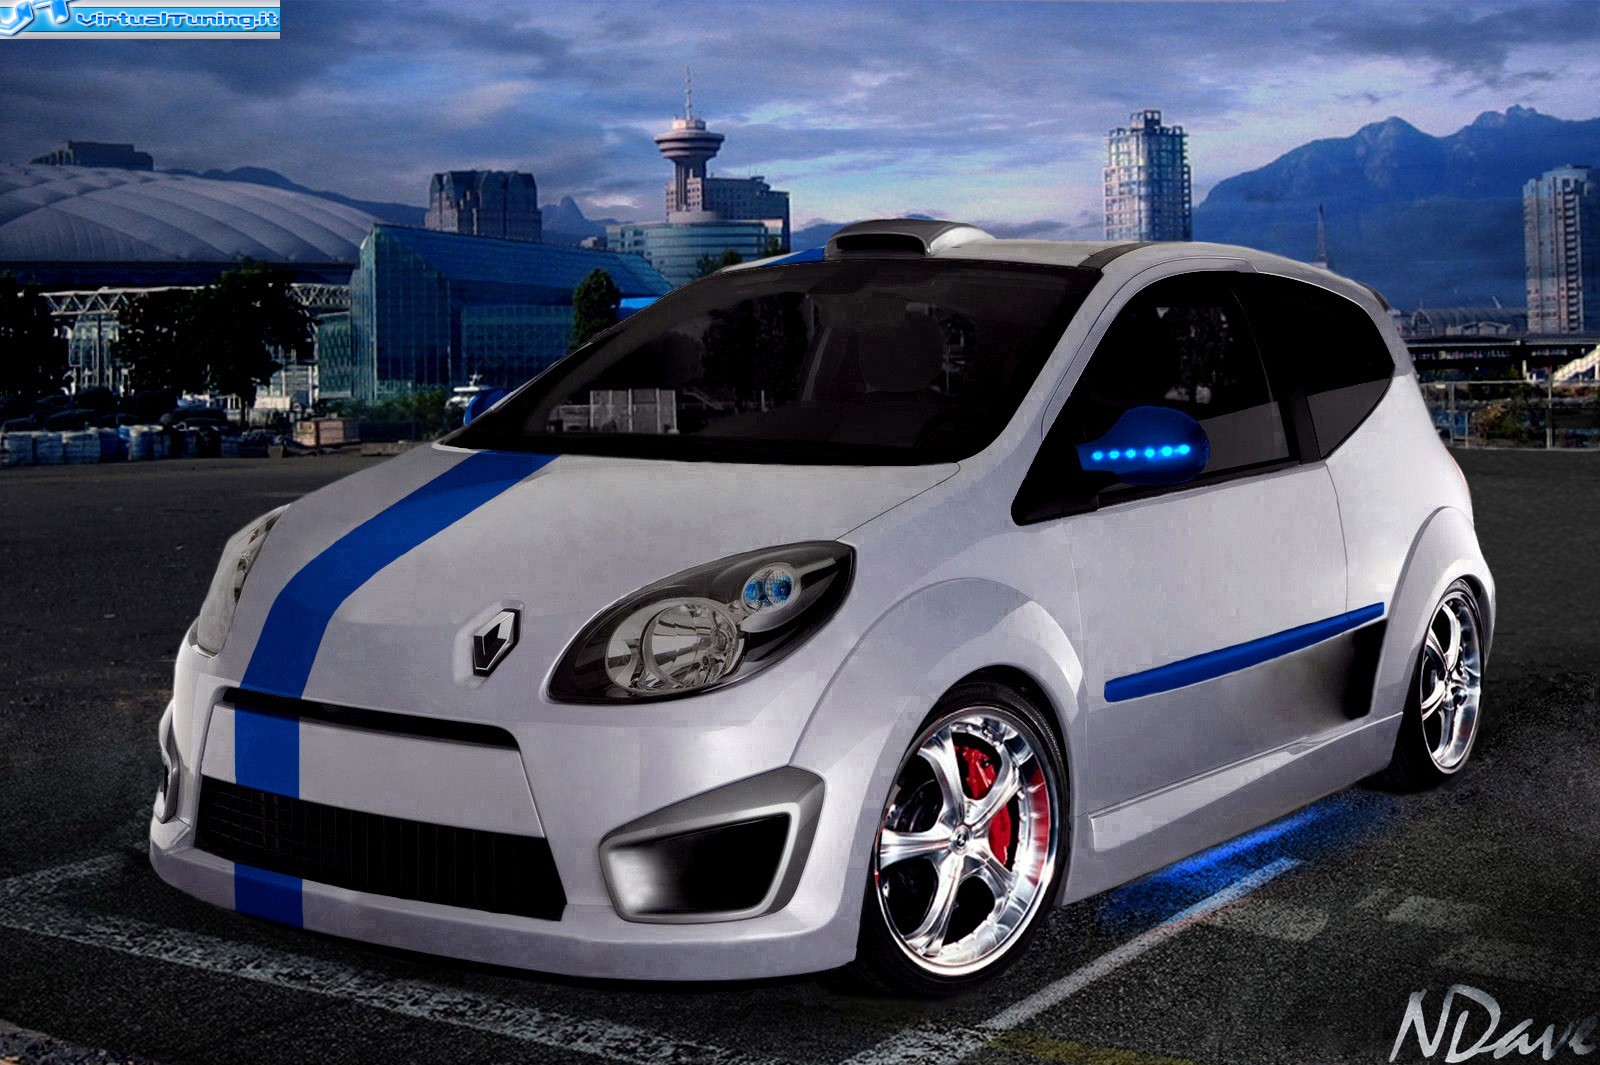 renault twingo rs by ndave virtualtuning it. Black Bedroom Furniture Sets. Home Design Ideas